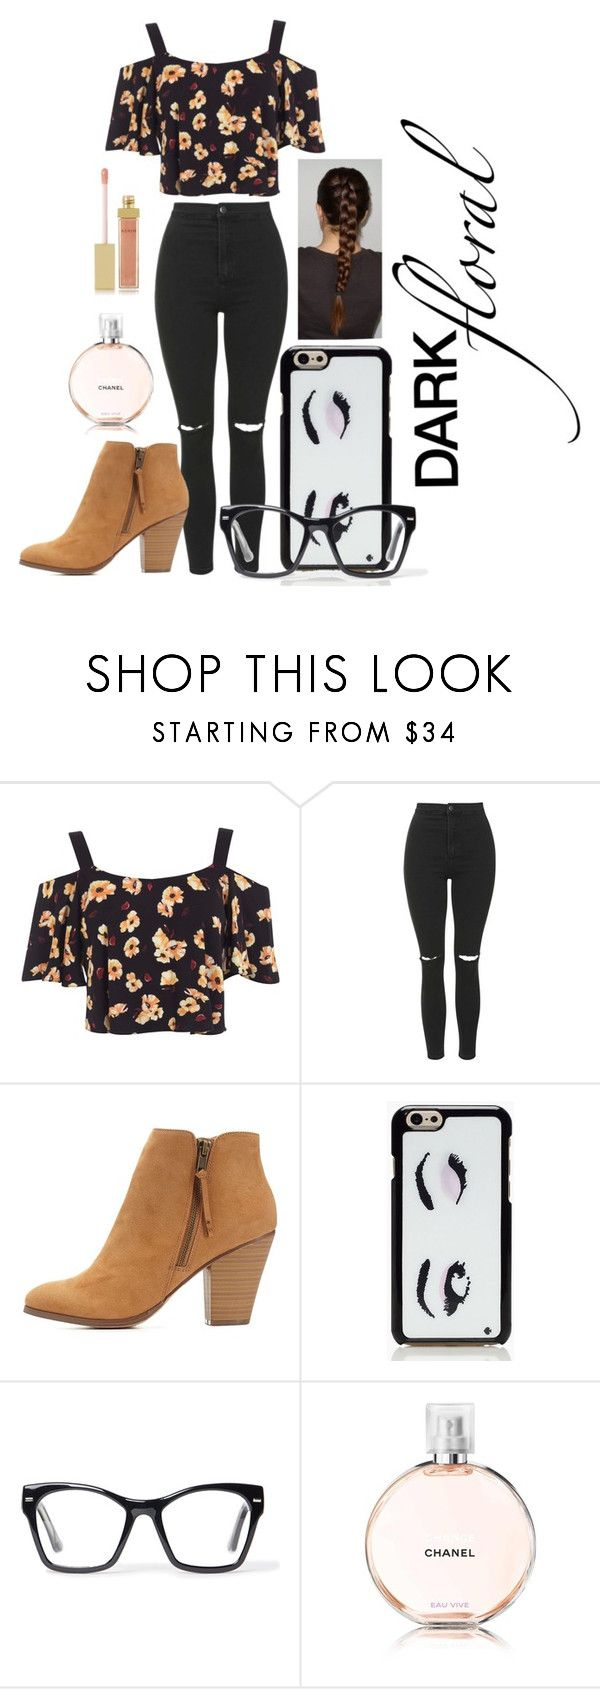 """""""Dark Floral"""" by fashiongirlxcx ❤ liked on Polyvore featuring Miss Selfridge, Topshop, Charlotte Russe, Kate Spade, Spitfire, AERIN and darkfloral"""